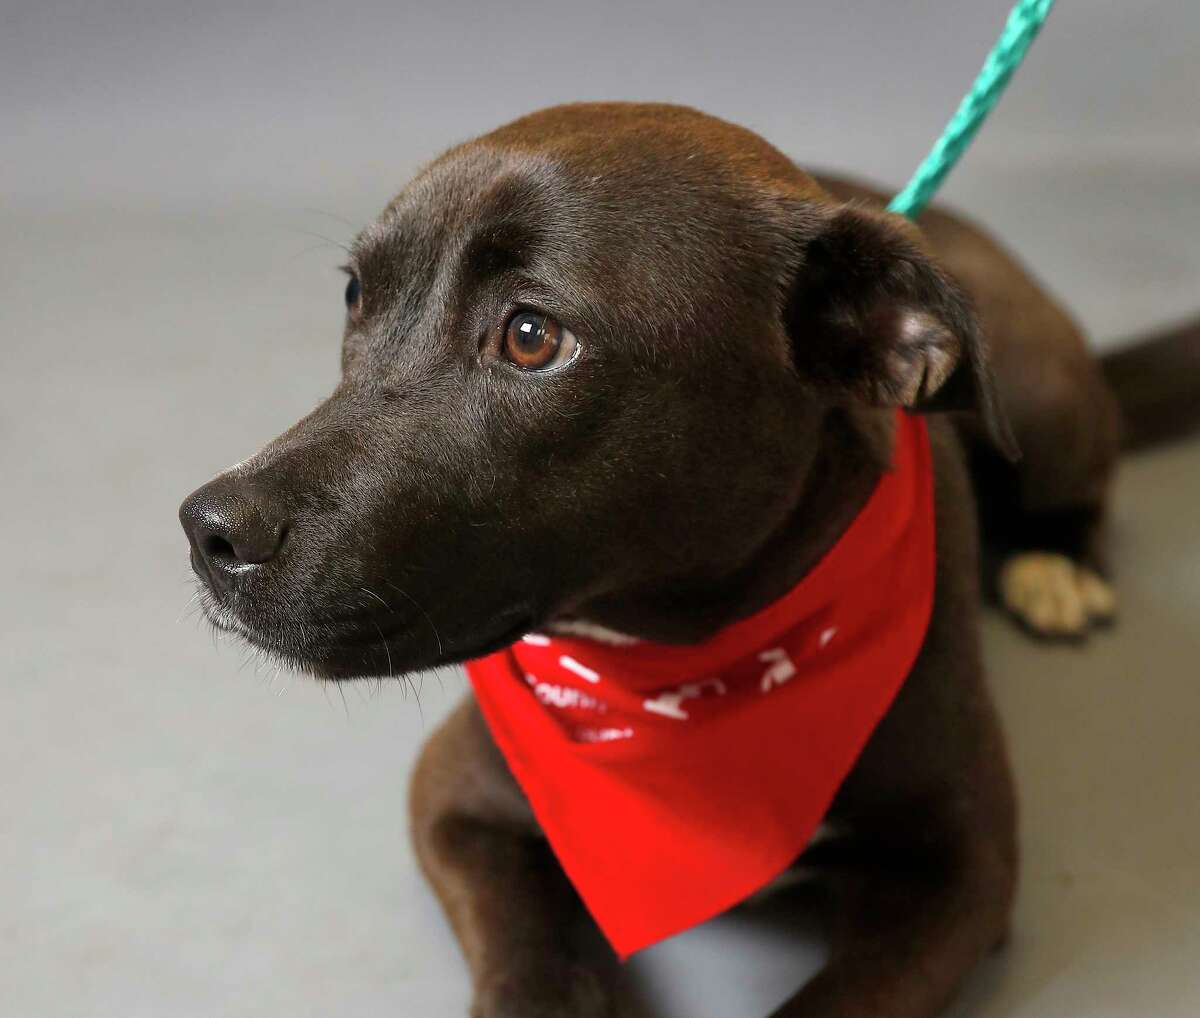 Sylvie (A551884) is a 1-year-old, female, Labrador Retriever mix available for adoption from the Harris County Animal Shelter, in Houston,Tuesday, March 17, 2020. Sylvie was brought into the shelter as a stray.